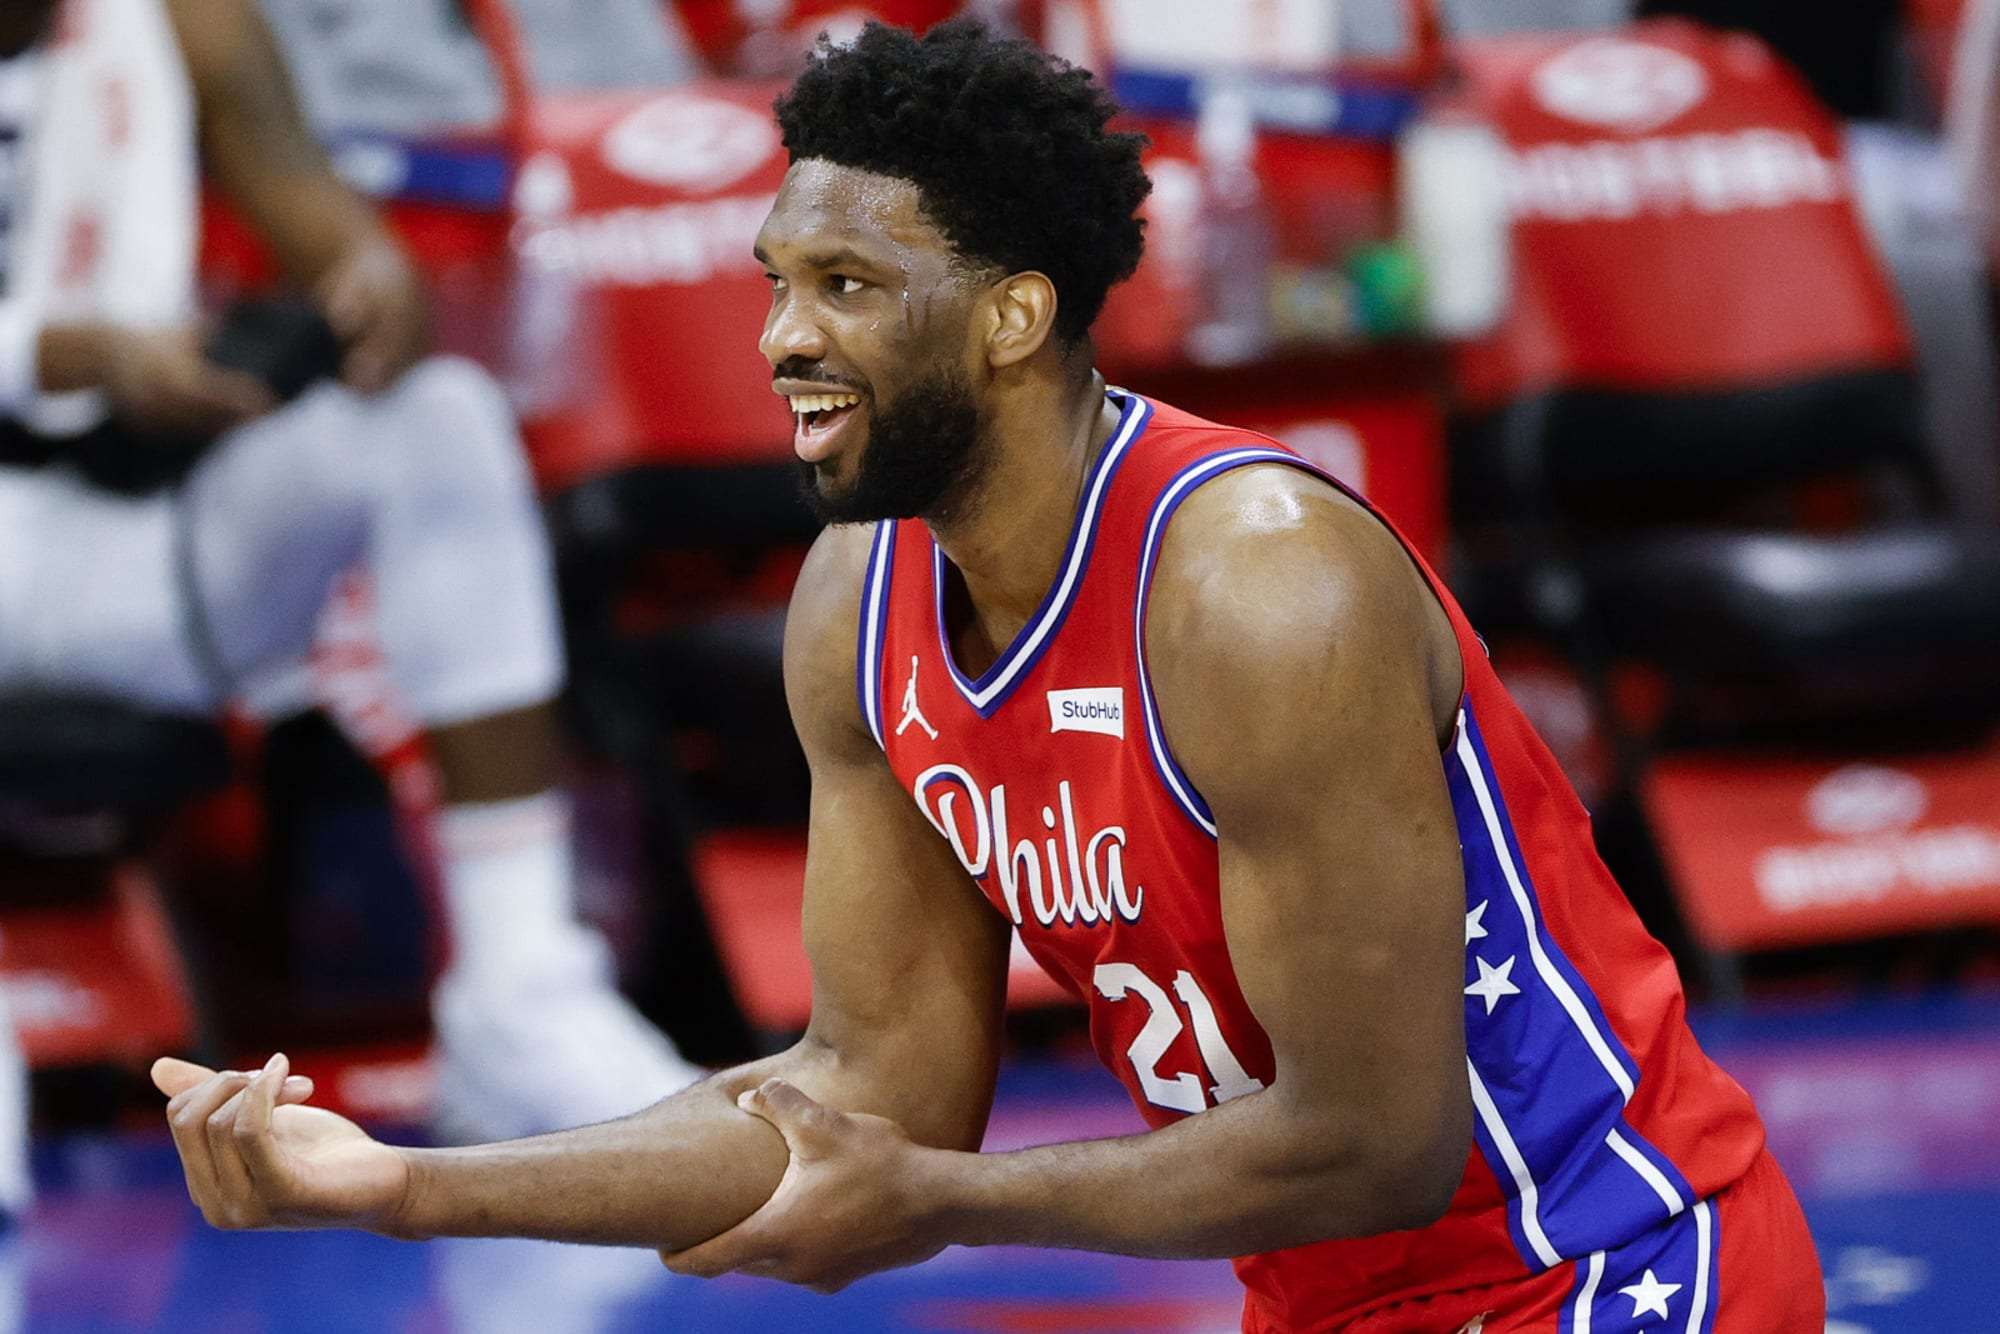 Joel Embiid says he's still the MVP, despite missing so many games